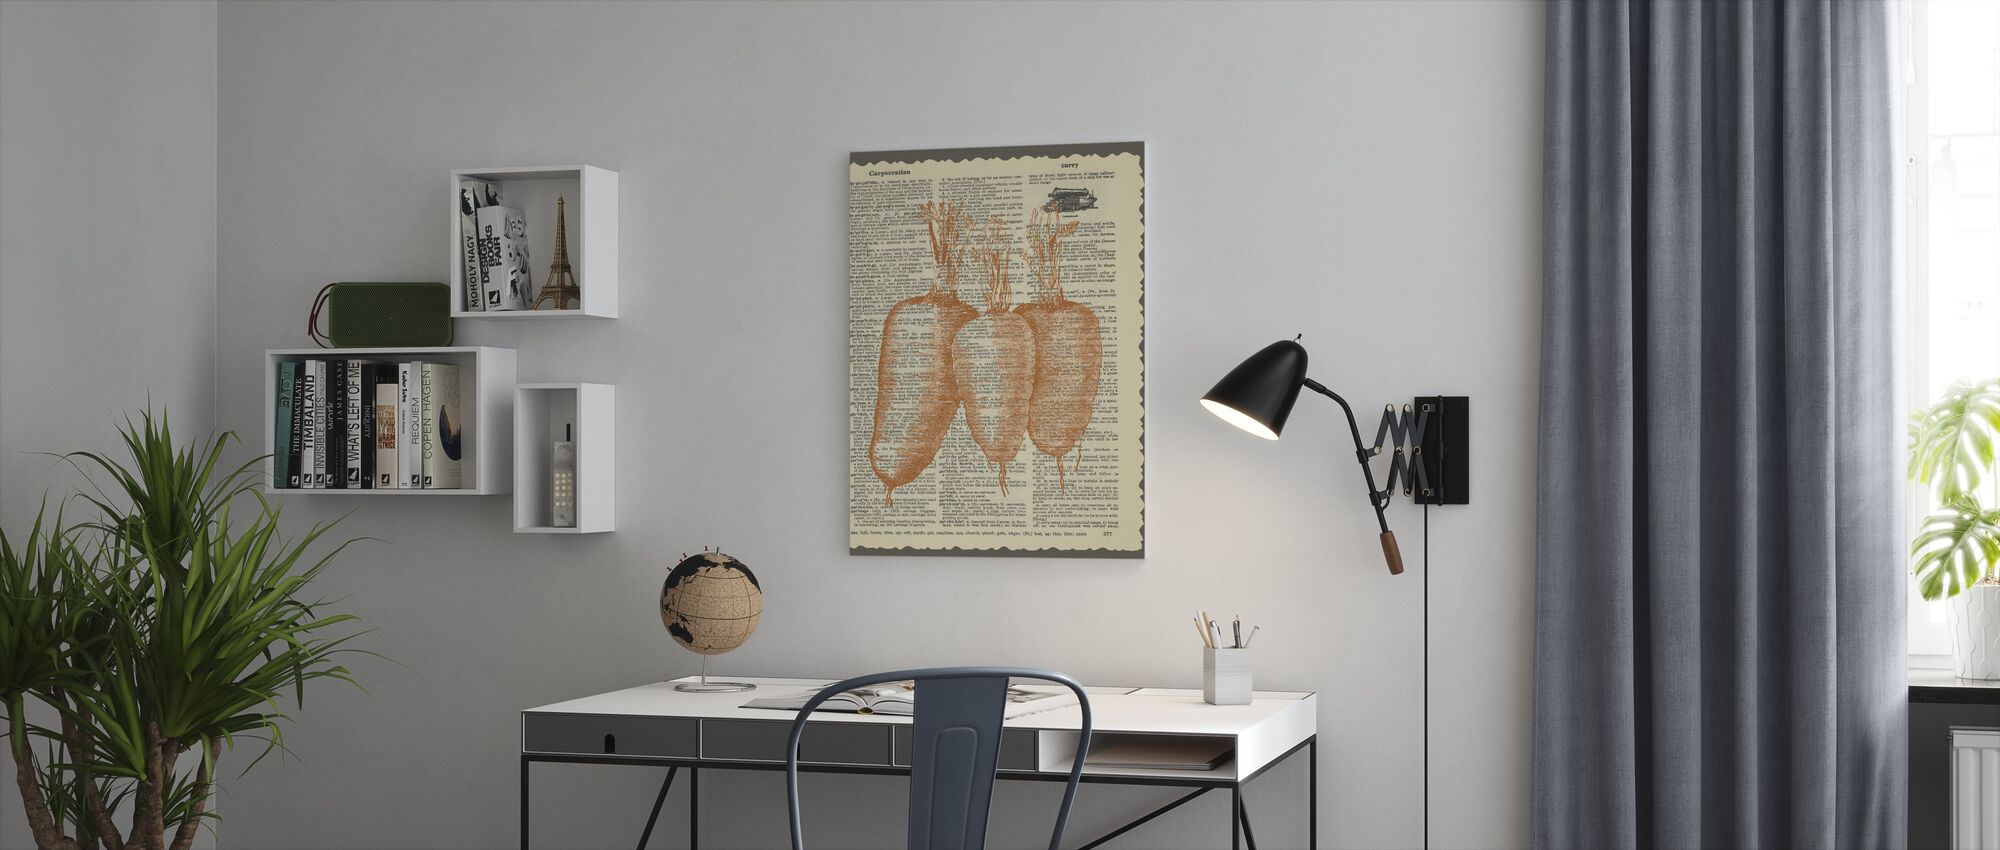 Carrots and Text - Canvas print - Office